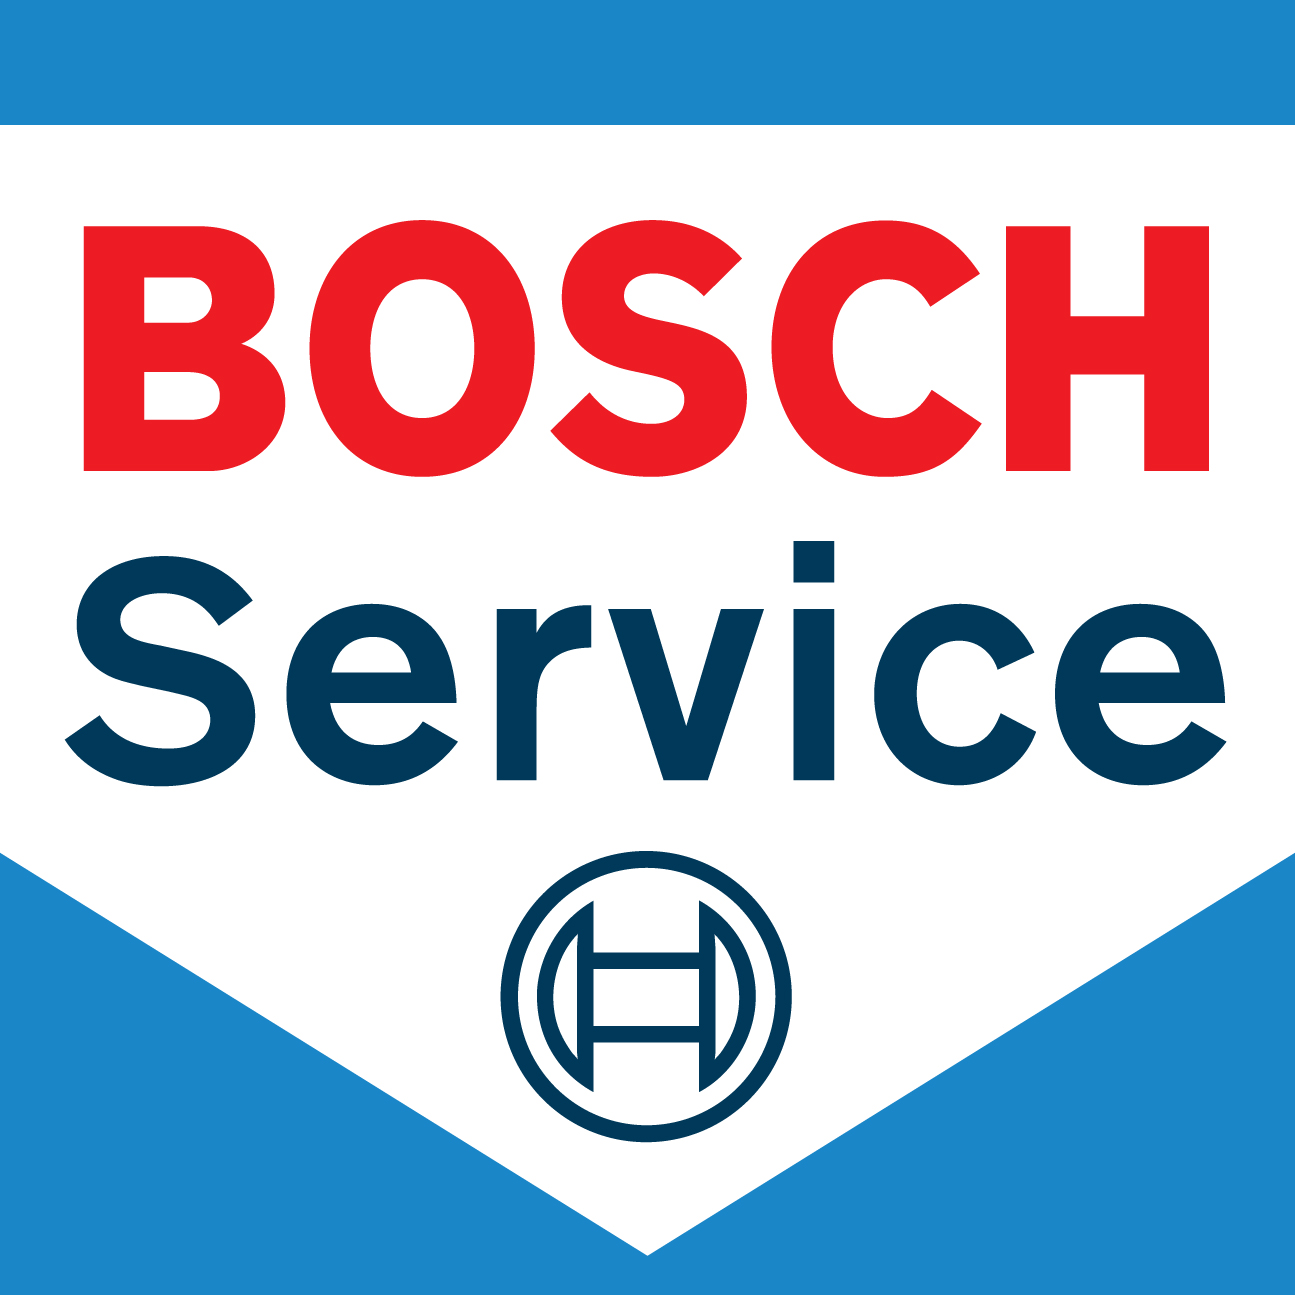 Bosch, Portola Valley Garage, Portola Valley, CA, 94028